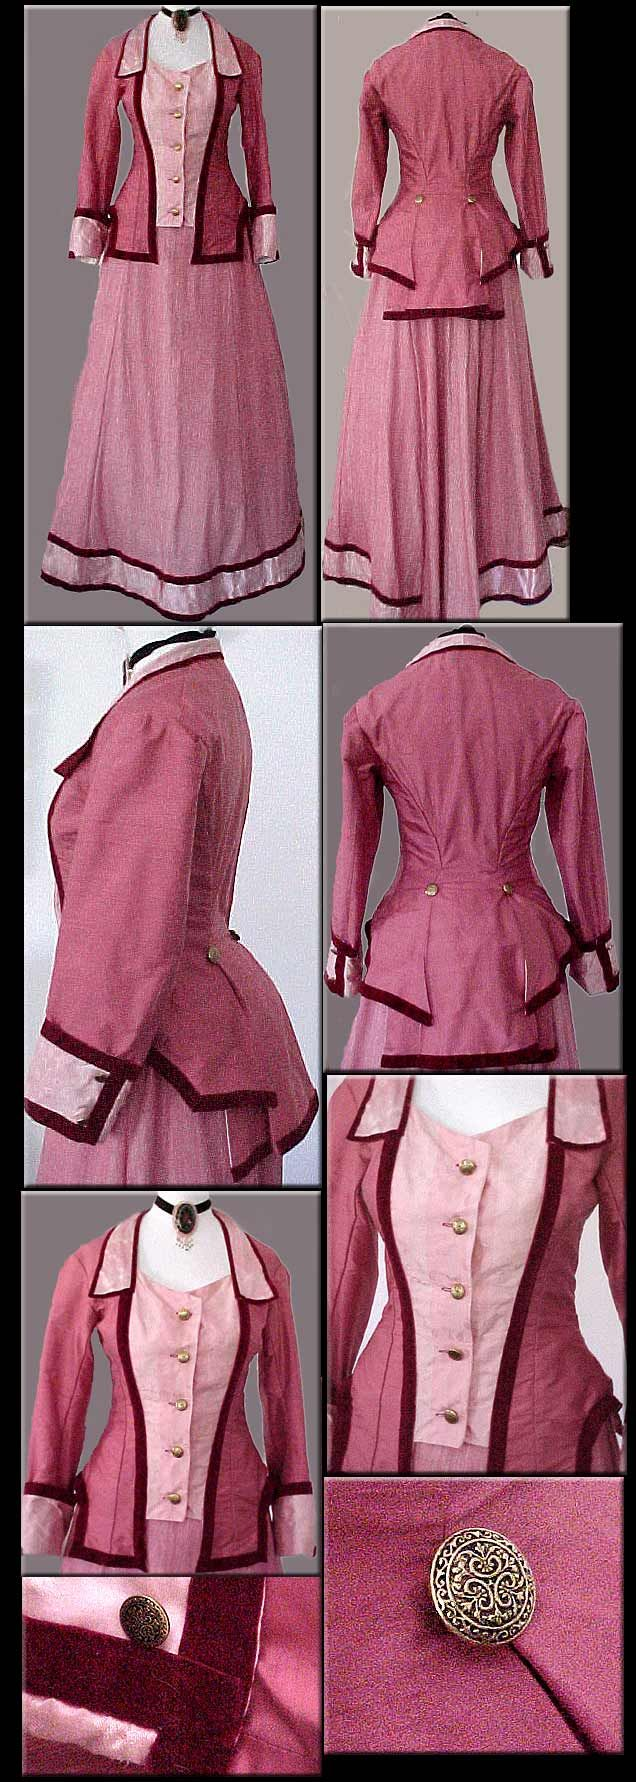 1870s Rose Silk and Velvet Walking Dress via Bustledress.com/.